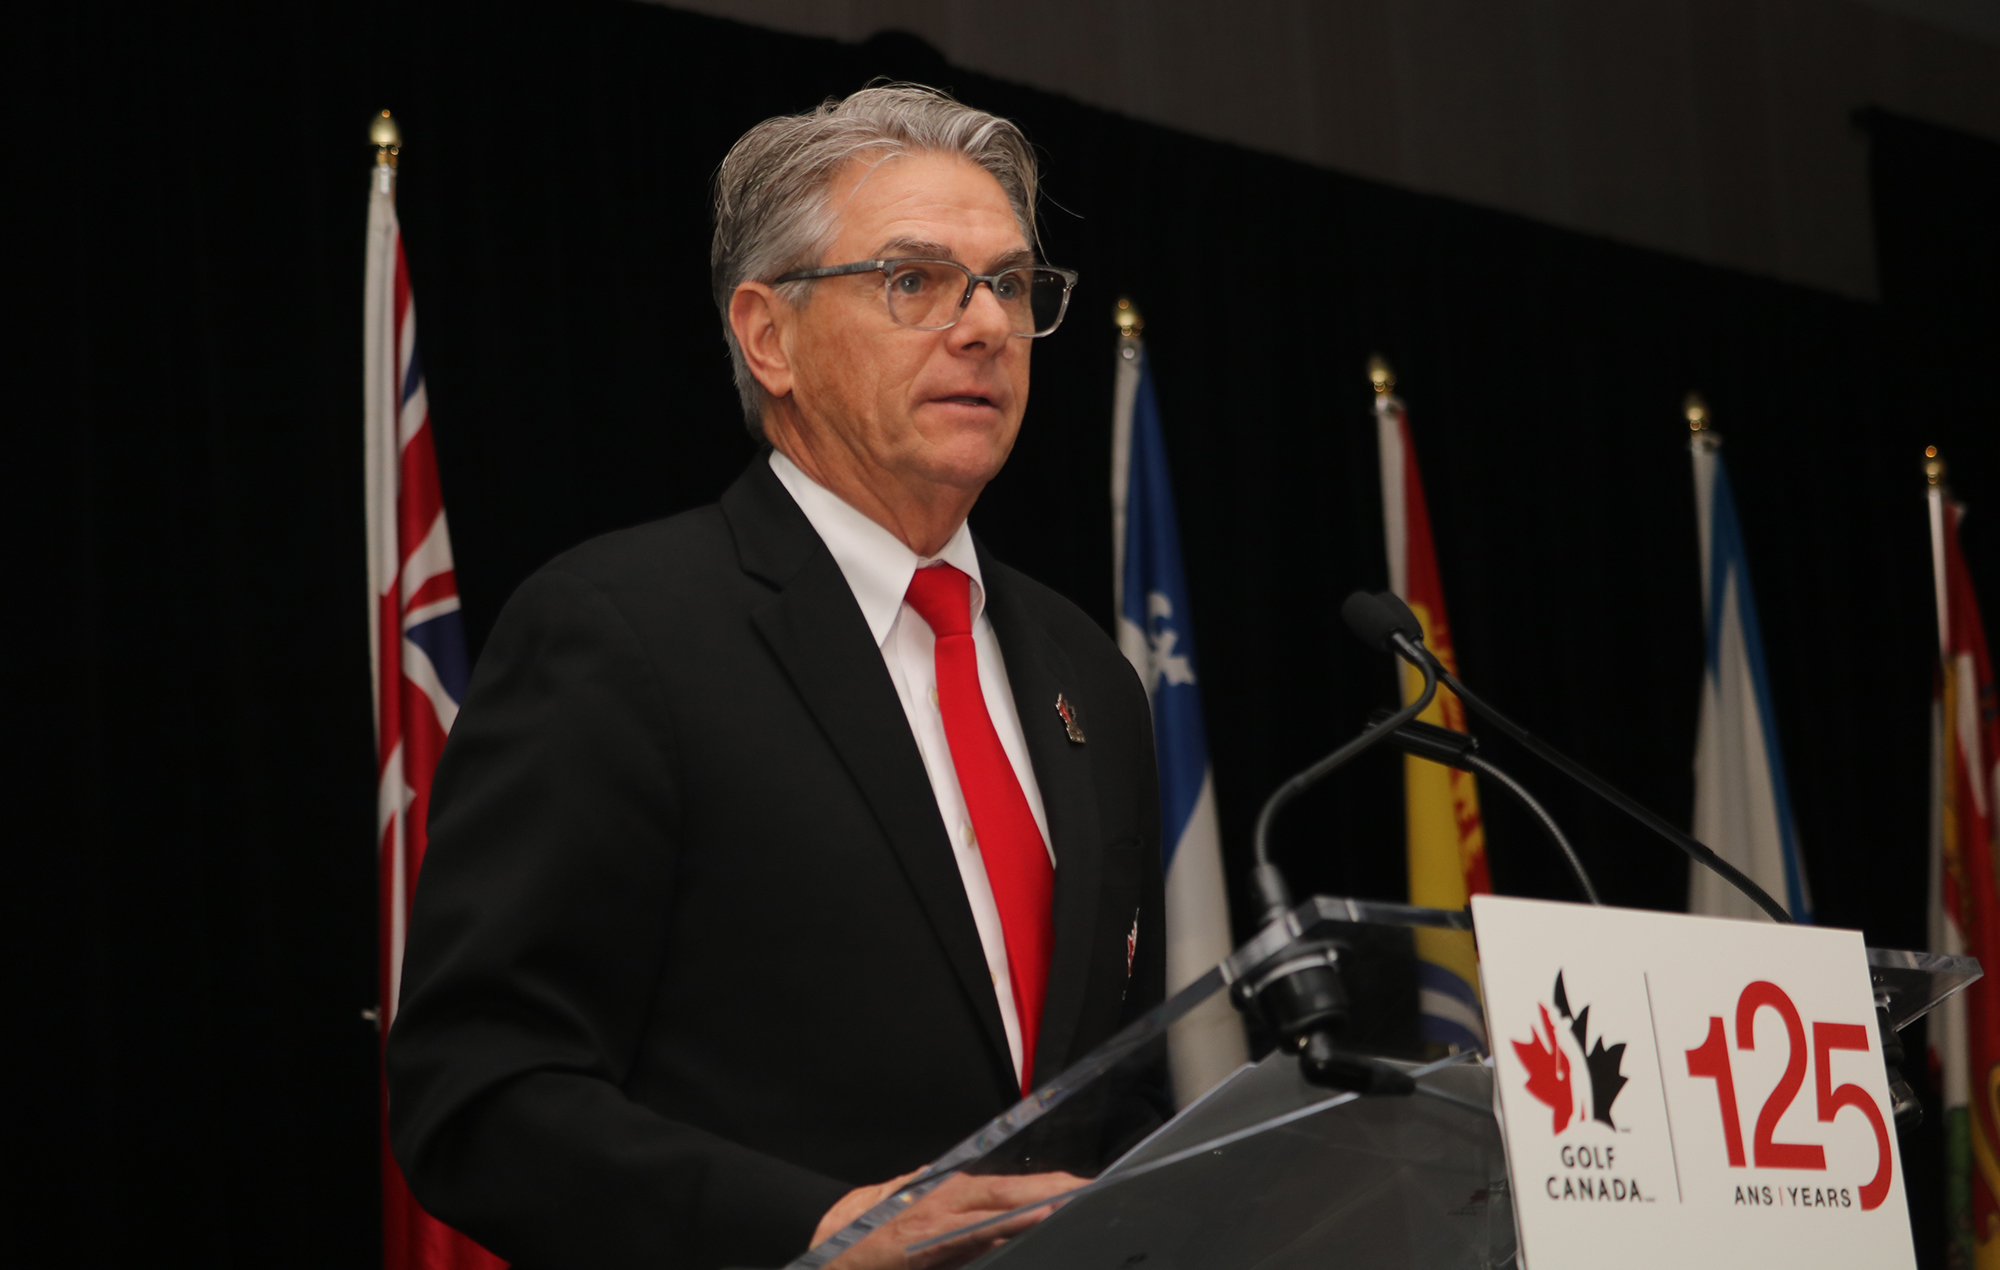 Golf Canada Annual Meeting concludes with Charlie Beaulieu elected to serve  a second term as president - Golf Canada